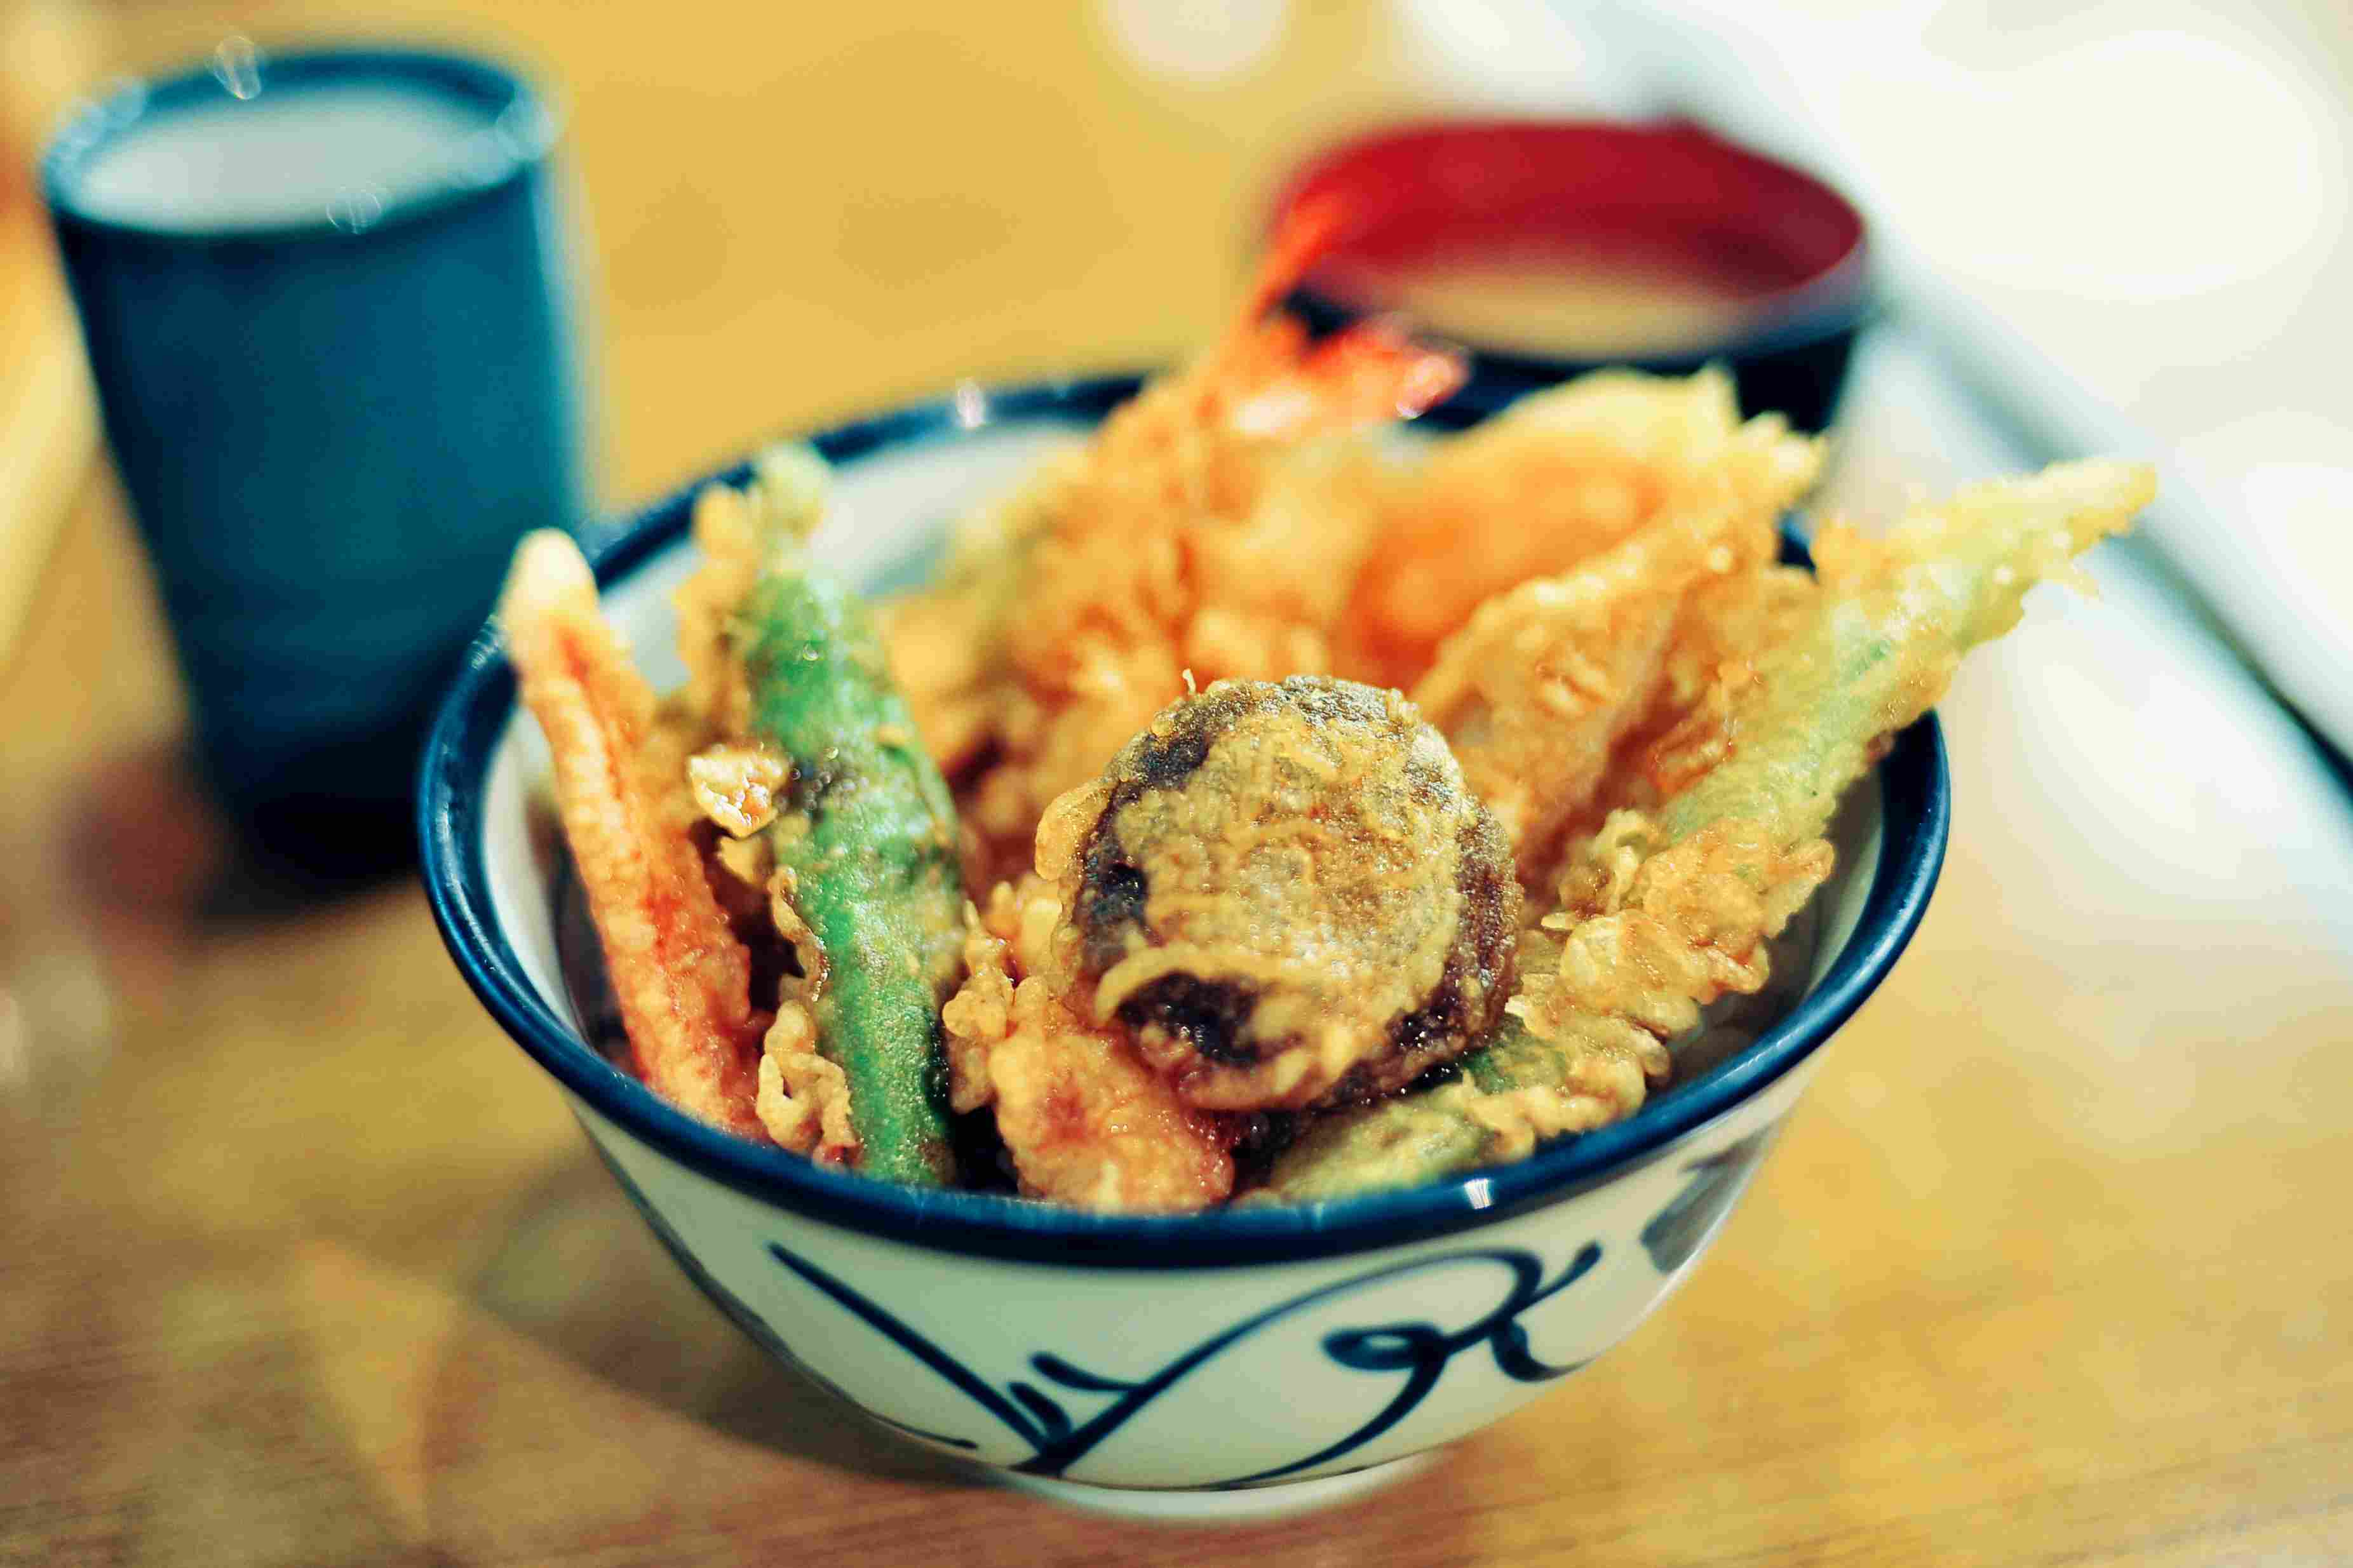 Big bowl of mixed vegetable and shrimp tempura on rice, known as 'tendon' in Japanese.